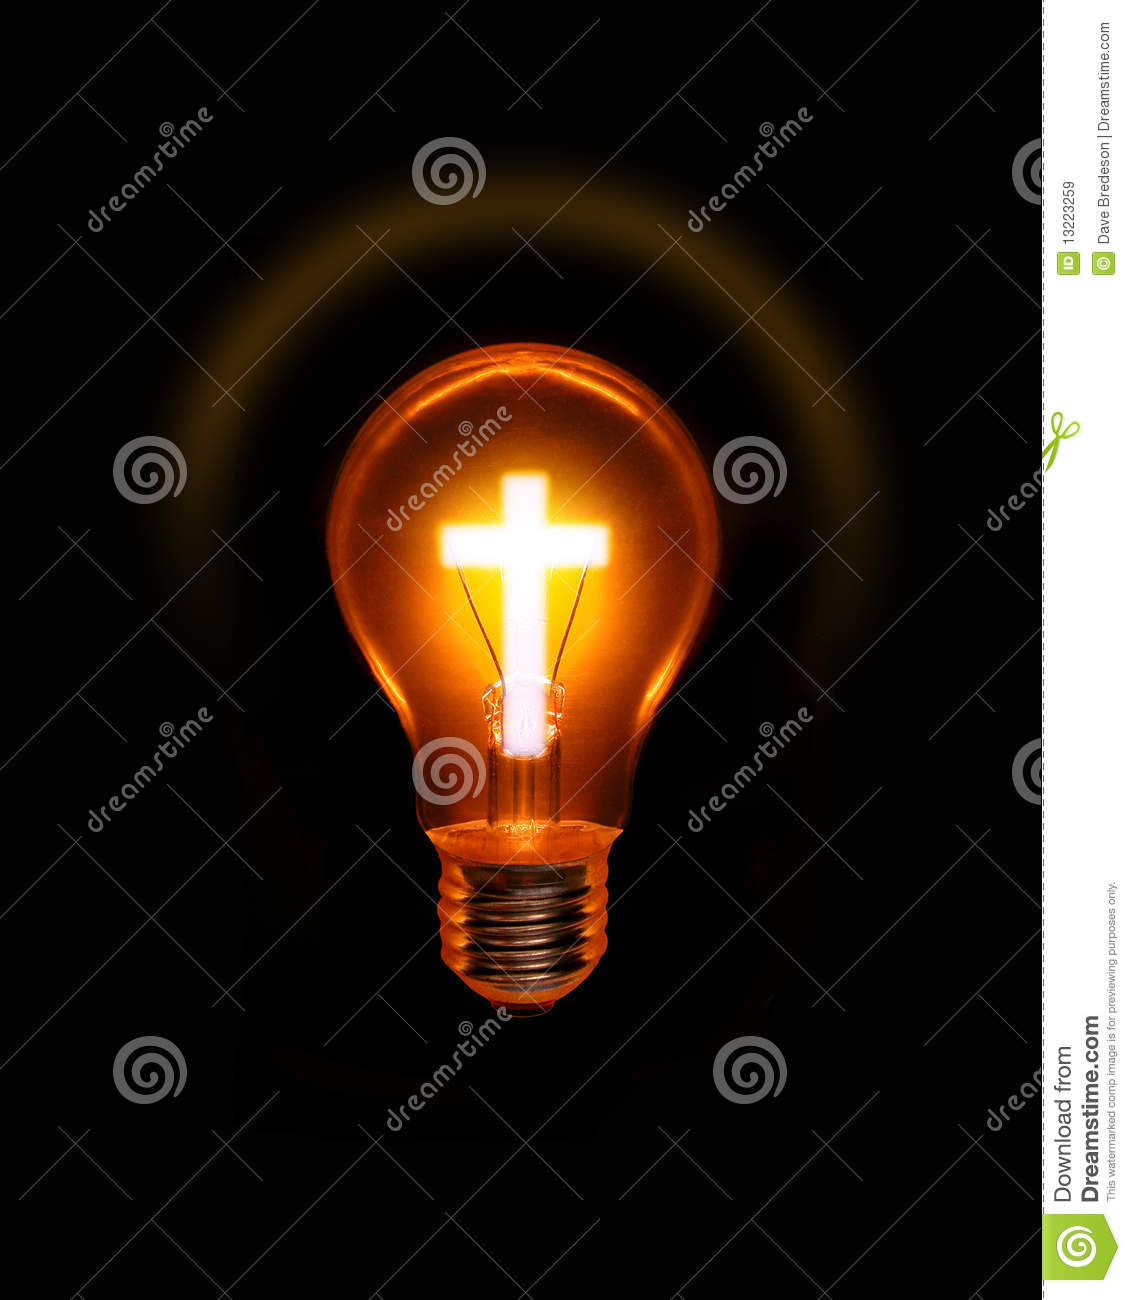 Fluorescent Lamp Cross Light Bulb Christian Spiritual Royalty Free Stock